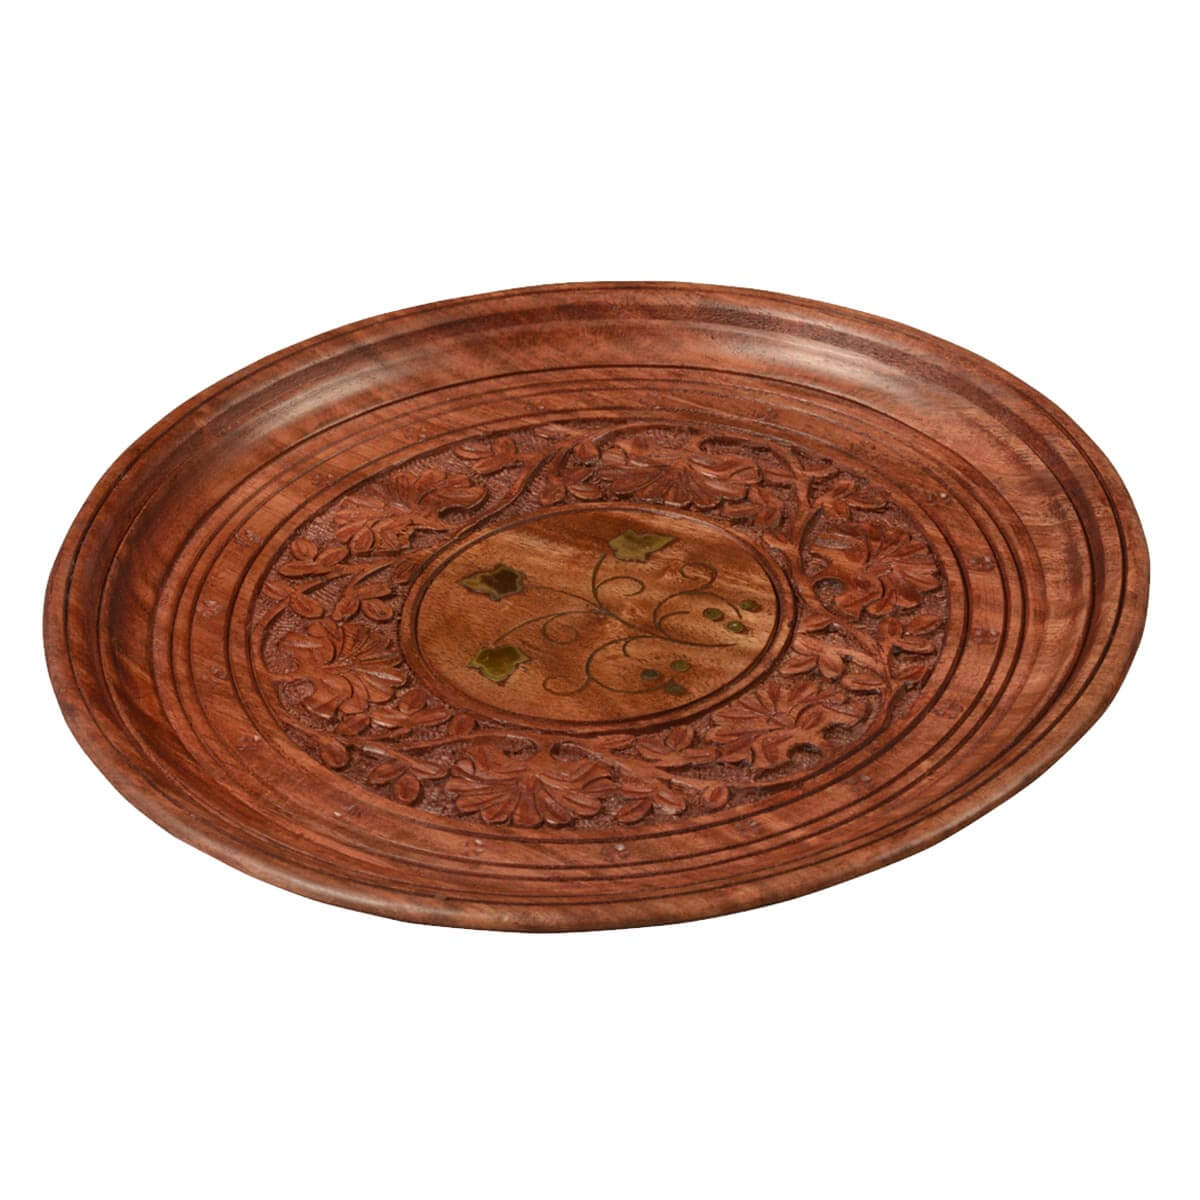 Twisted Vine Hand Carved Mango Wood 9.5 Round Wooden Serving Tray  sc 1 st  Sierra Living Concepts & Twisted Vine Hand Carved Mango Wood 9.5